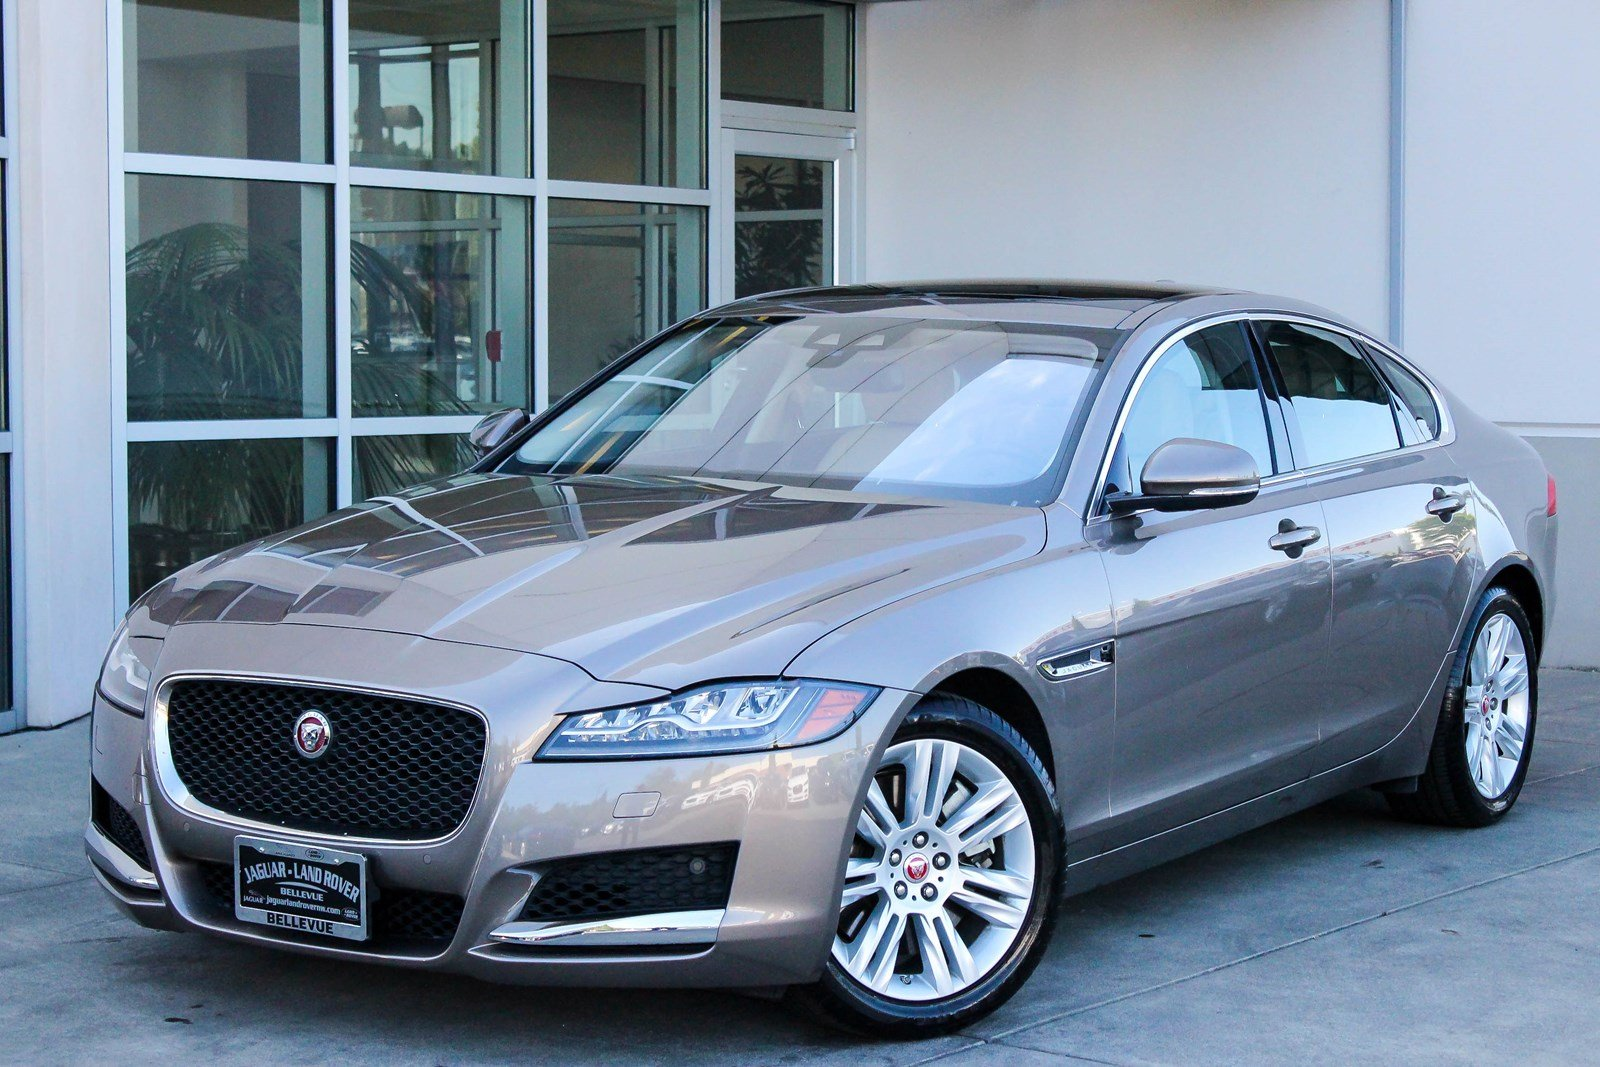 certified pre owned 2017 jaguar xf 35t premium 4dr car in bellevue 8245 jaguar bellevue. Black Bedroom Furniture Sets. Home Design Ideas